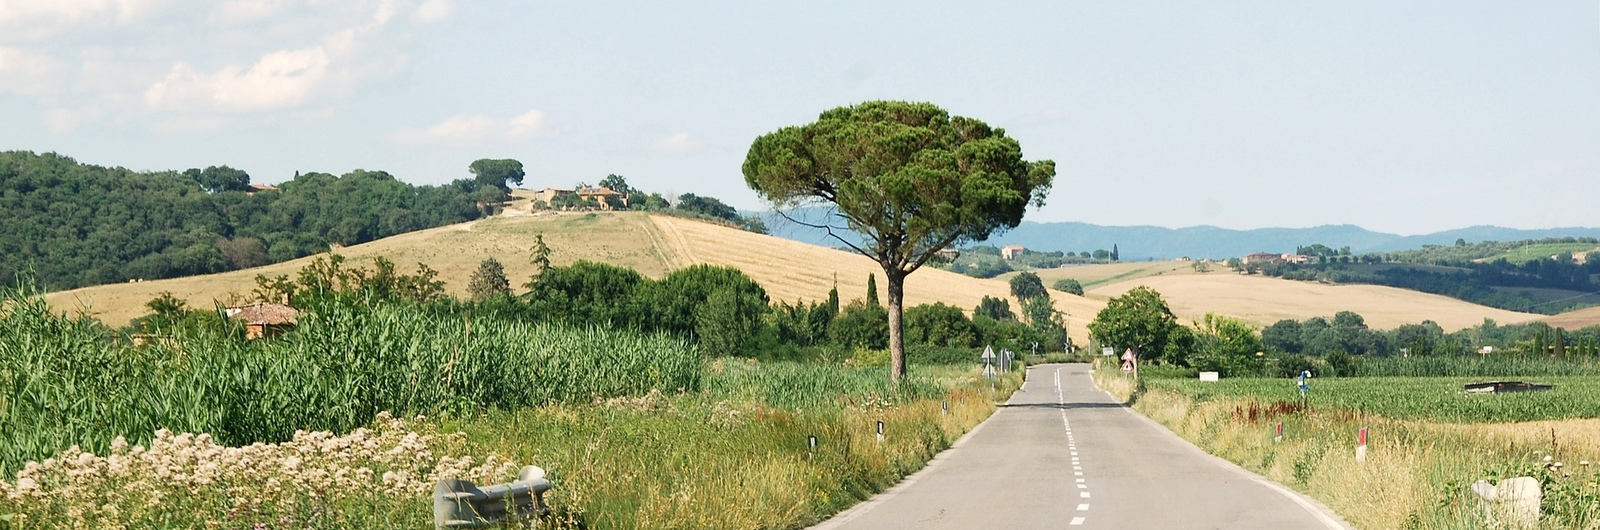 city header italy road